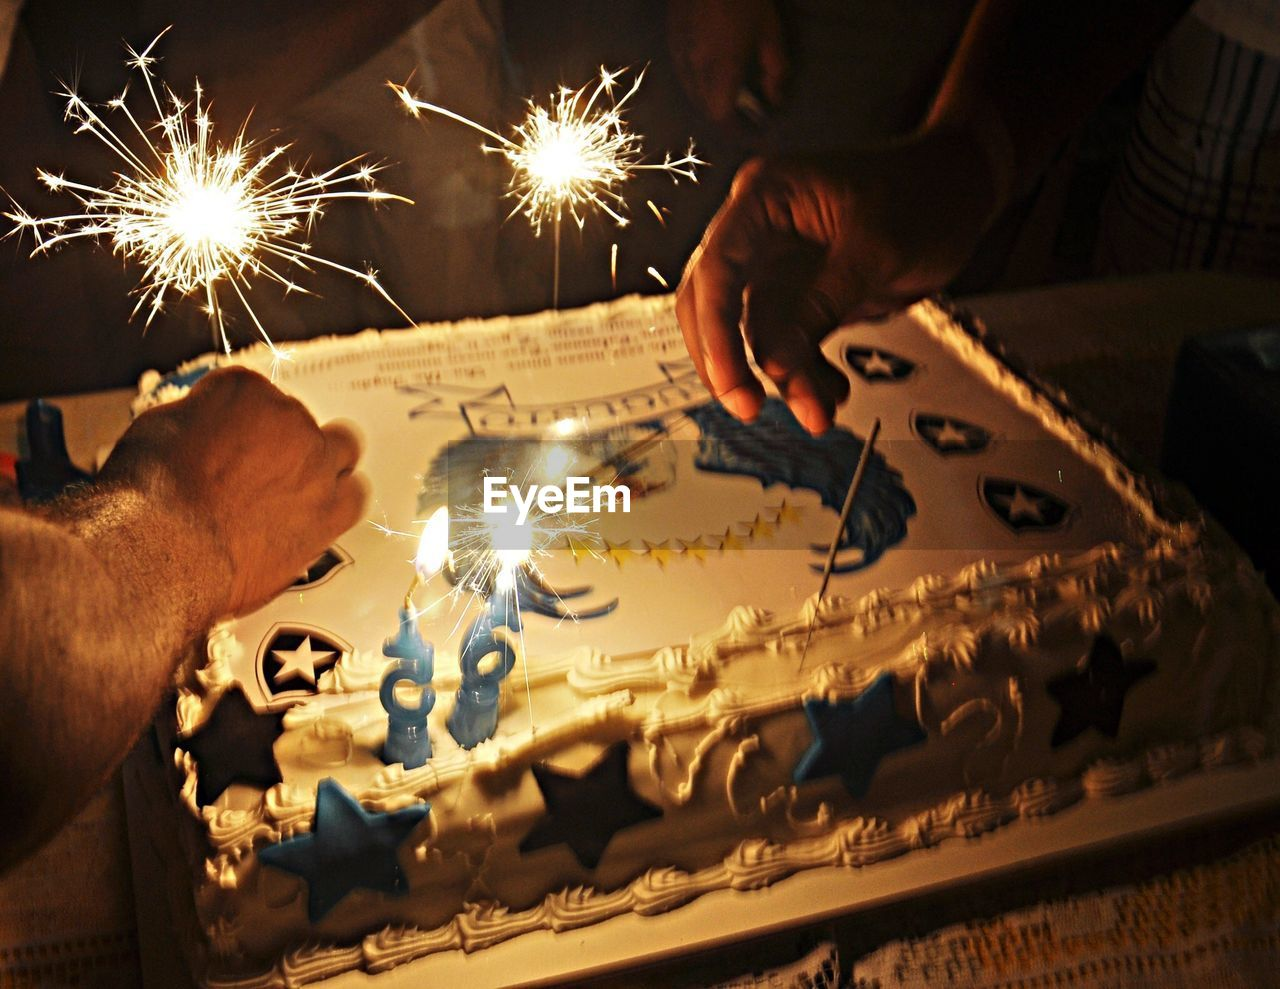 human hand, celebration, human body part, flame, sparkler, burning, illuminated, glowing, real people, candle, indoors, birthday, motion, table, cake, birthday cake, men, sweet food, heat - temperature, holding, birthday candles, close-up, night, togetherness, people